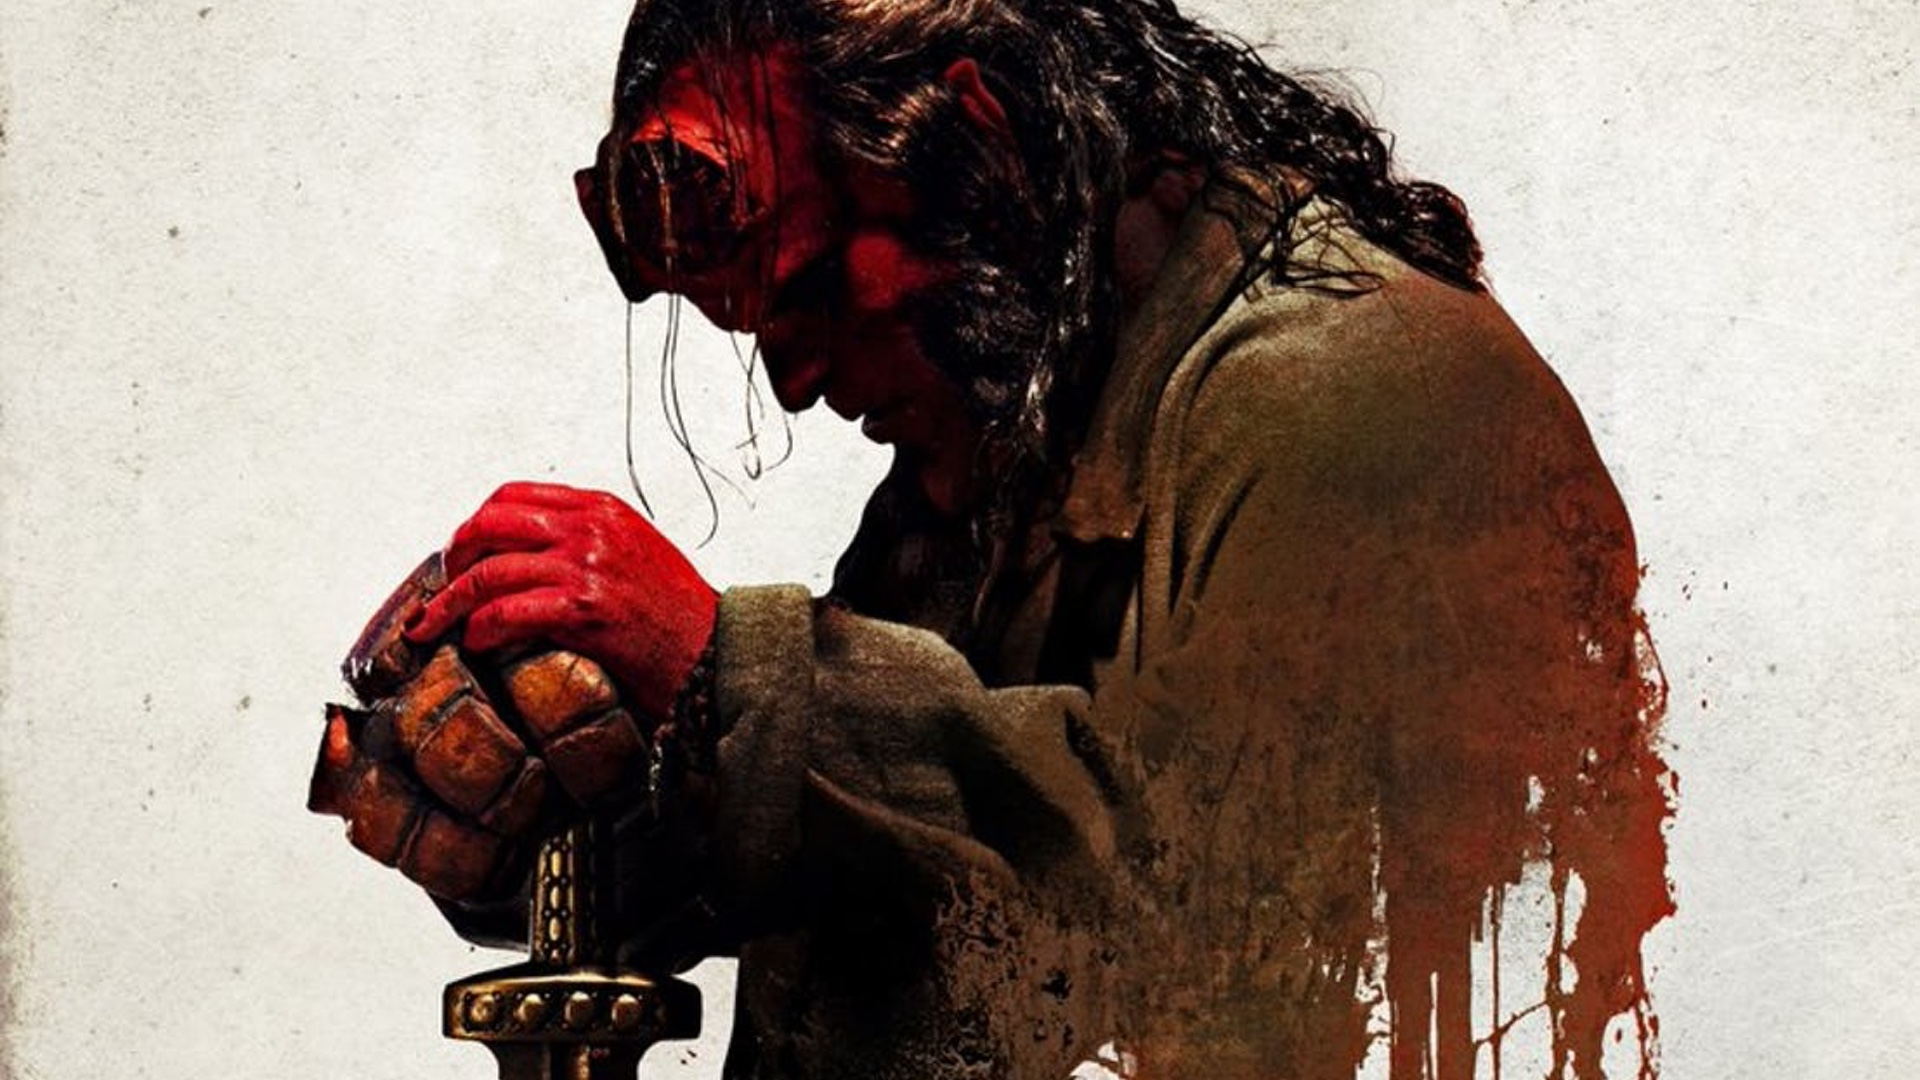 hellboy-gets-four-cool-new-posters-social.jpg